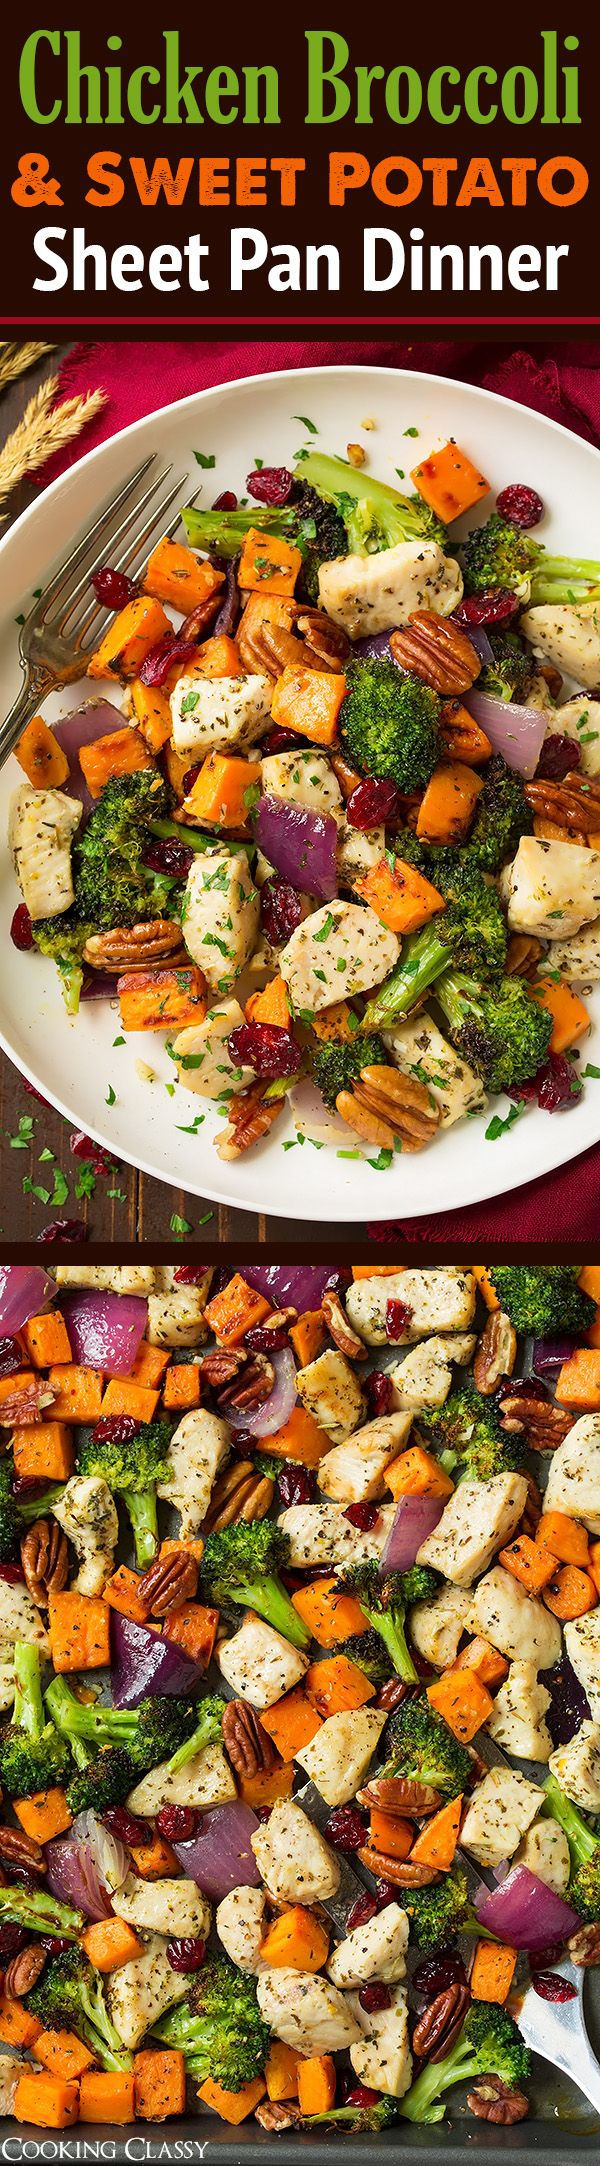 Chicken Broccoli and Sweet Potato Sheet Pan Dinner - A new go-to healthy fall dinner! Whole family LOVED this recipe!